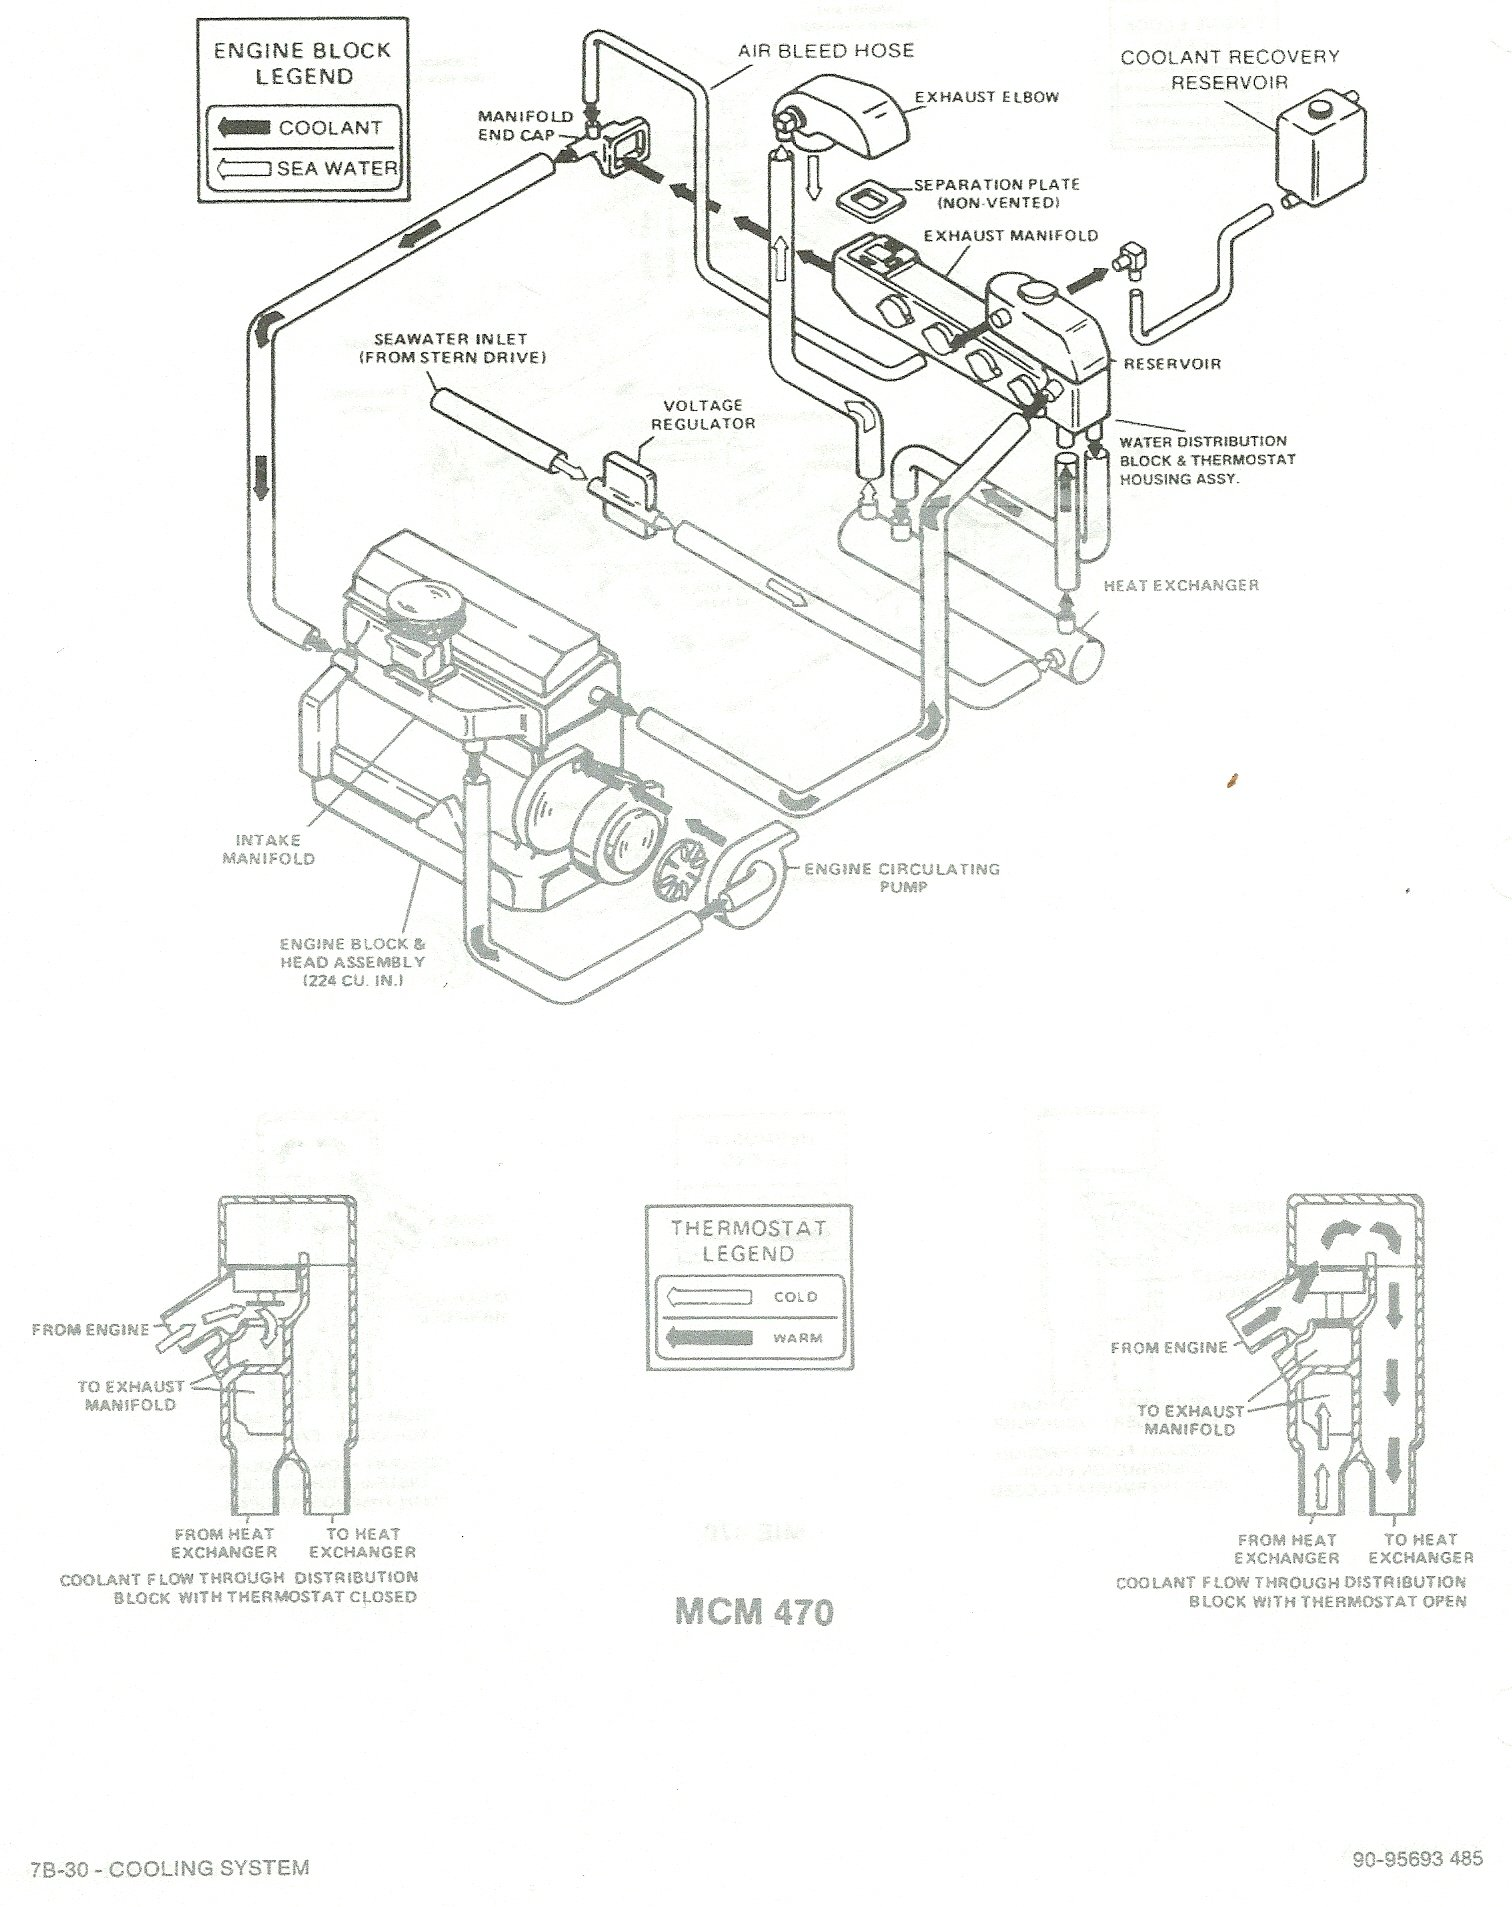 inboard marine engine diagram marine head diagram wiring